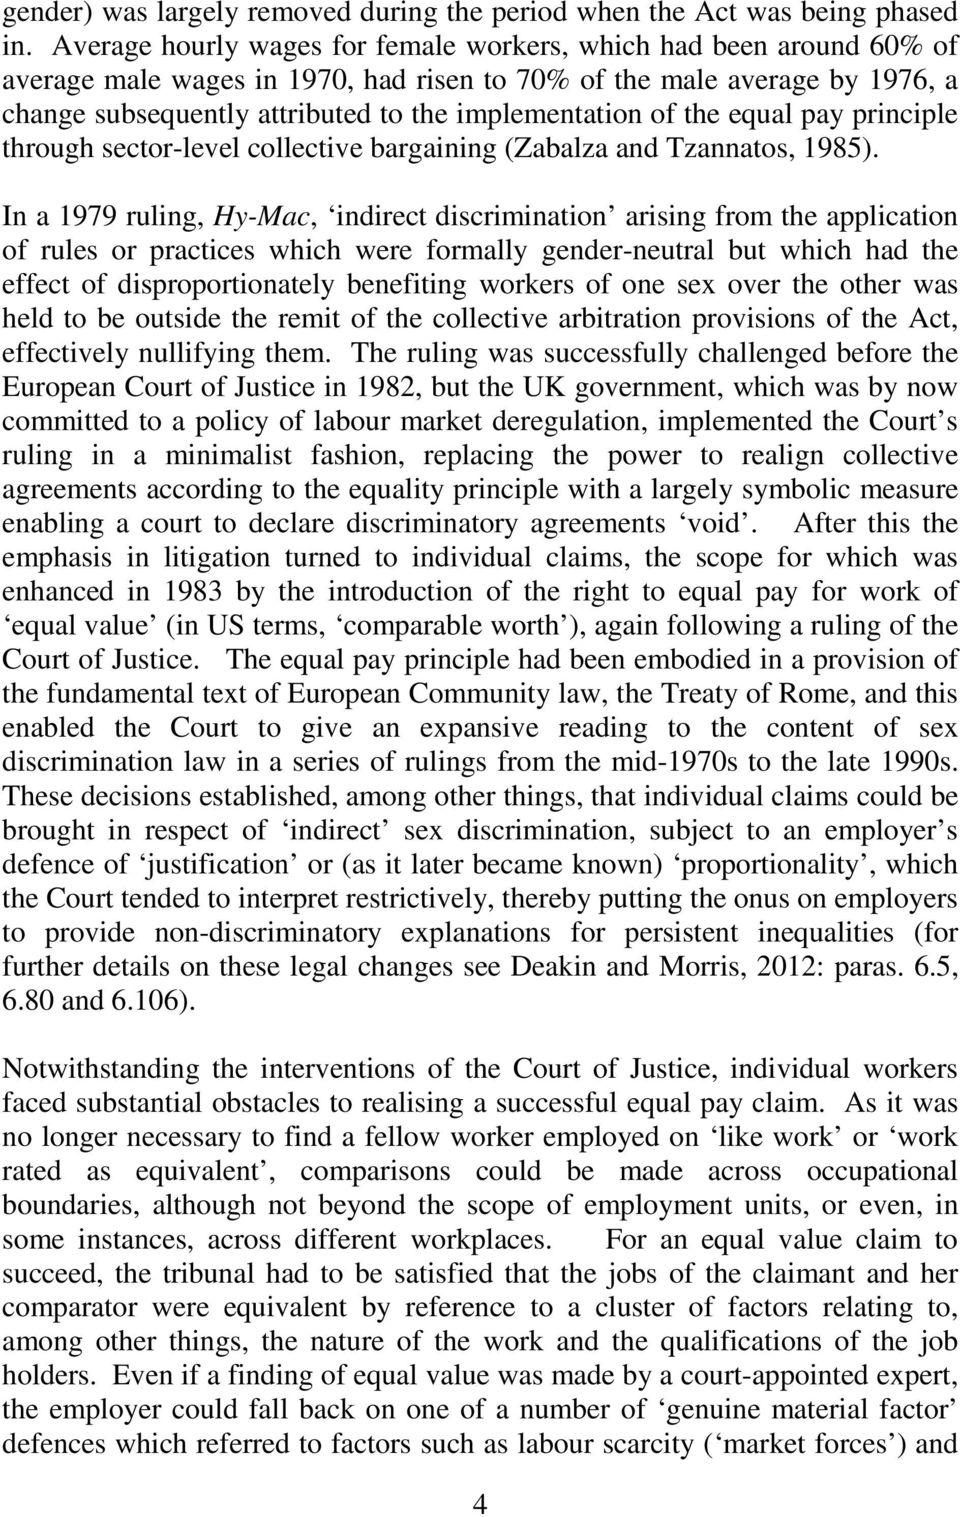 of the equal pay principle through sector-level collective bargaining (Zabalza and Tzannatos, 1985).